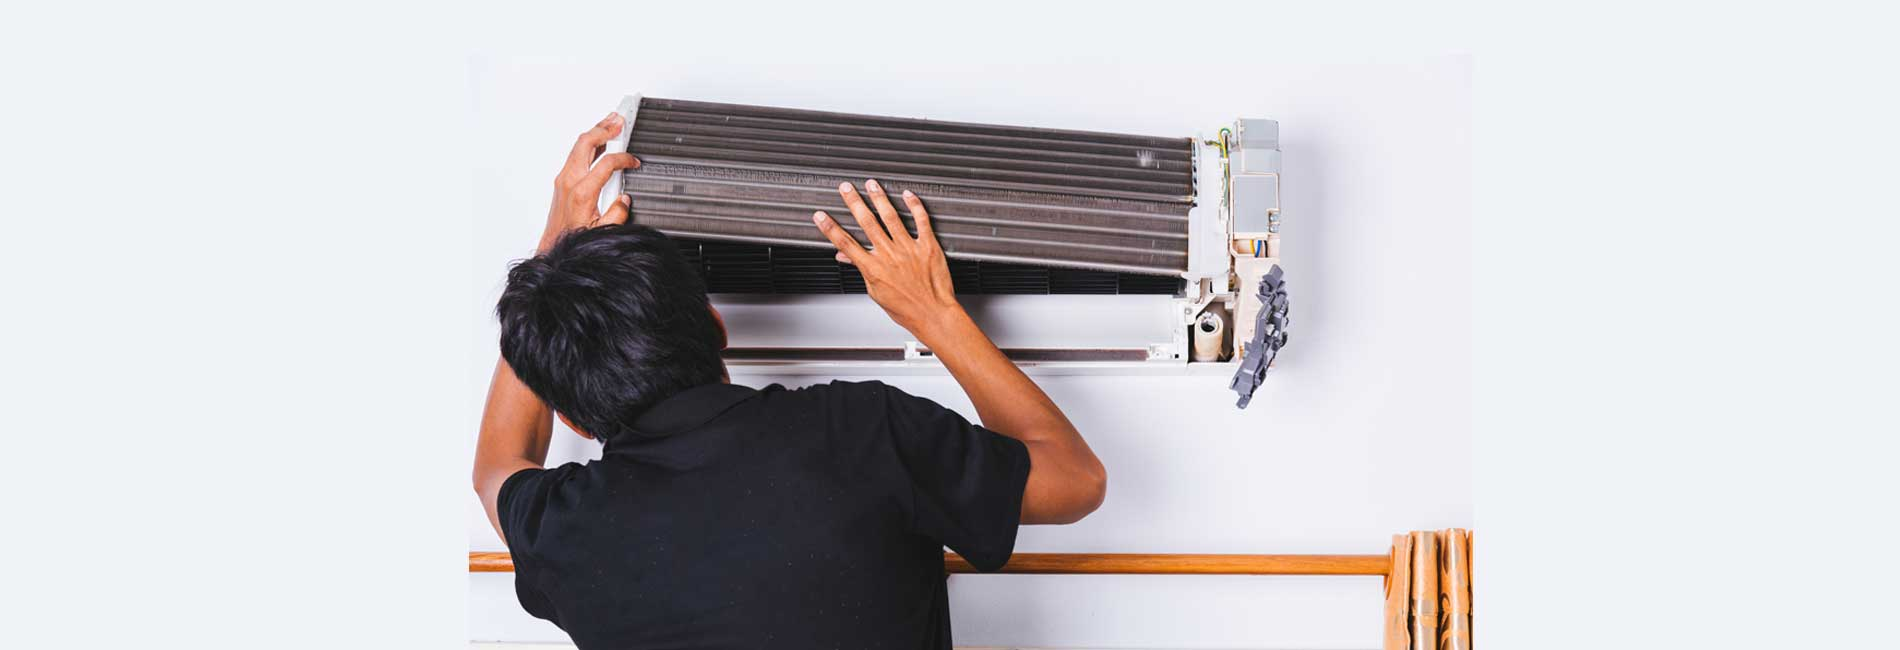 Panasonic AC Service in Sowcarpet